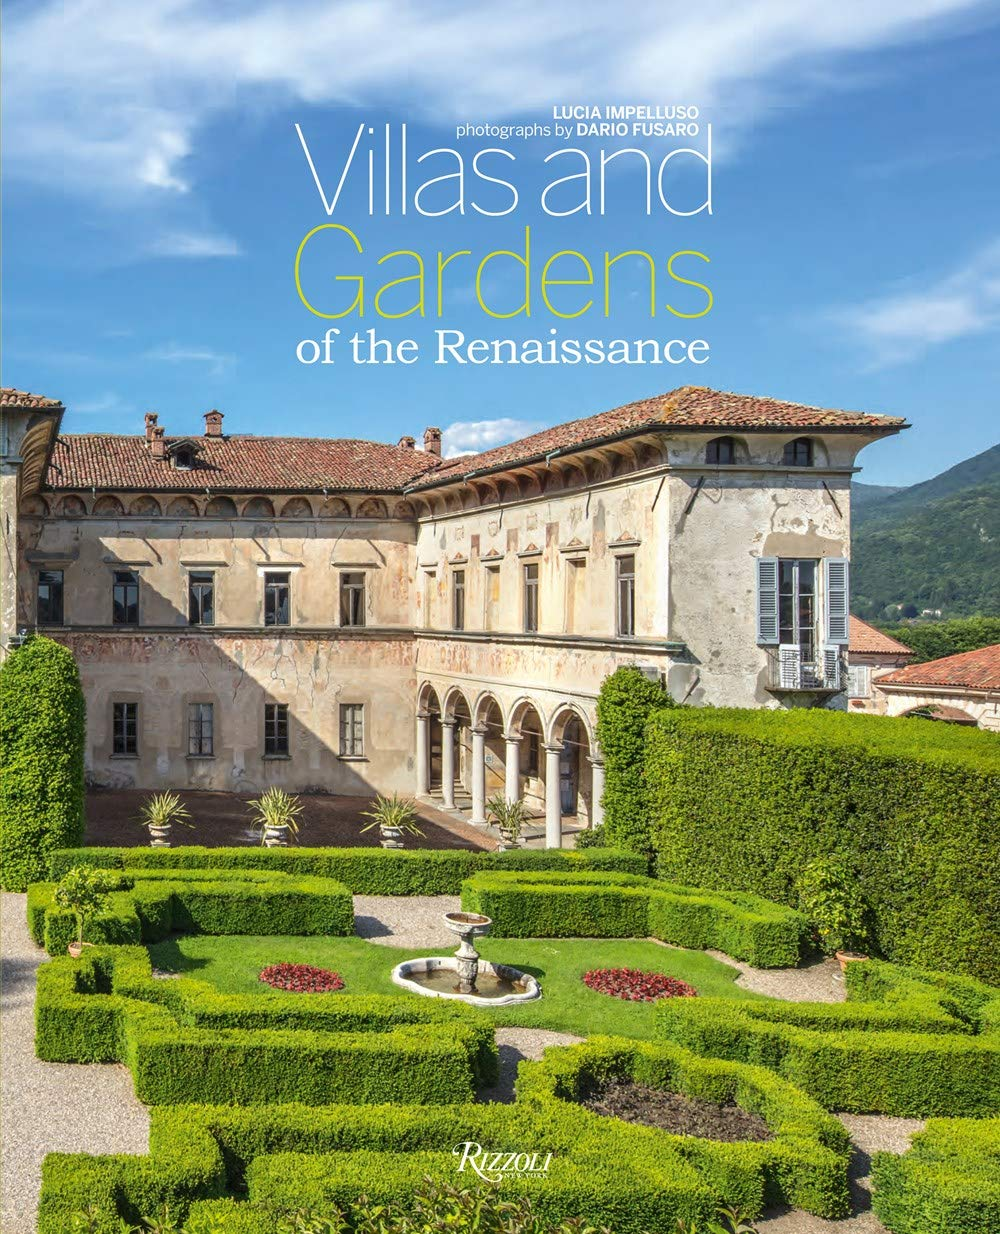 Villas and Gardens of the Renaissance by Rizzoli